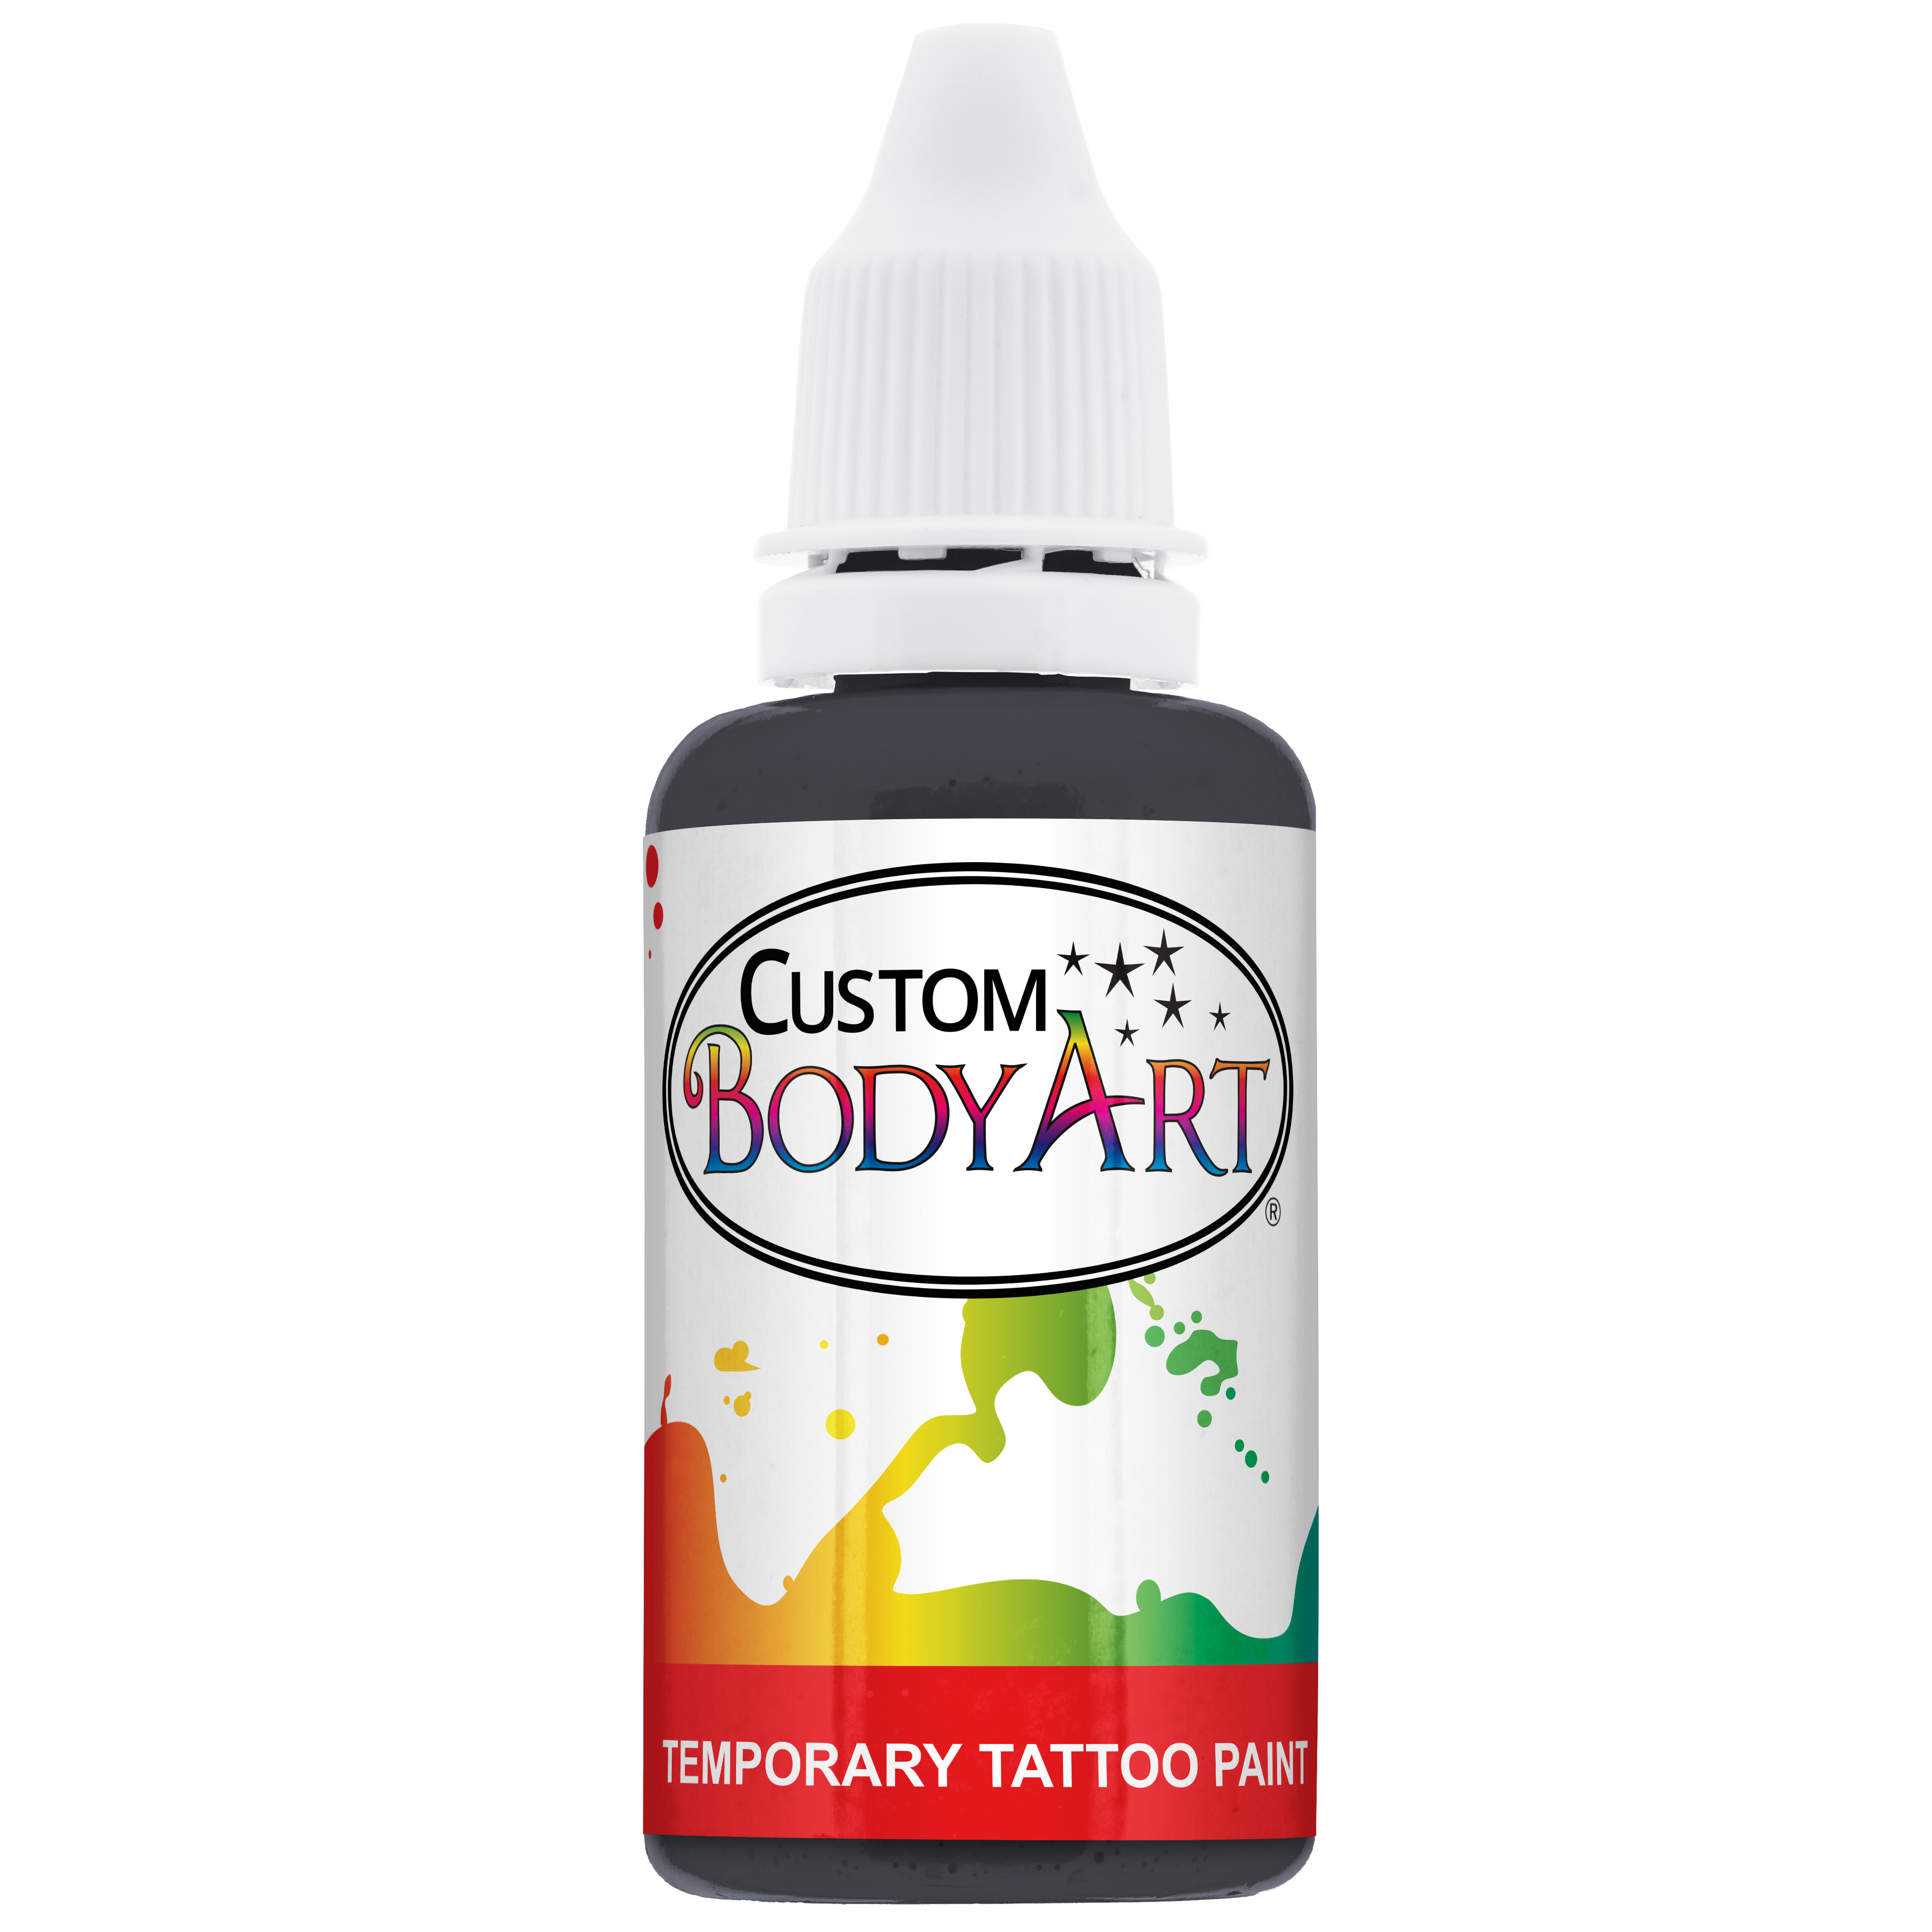 Details About 1 Oz Black Body Art Temporary Tattoo Airbrush Paint Ink